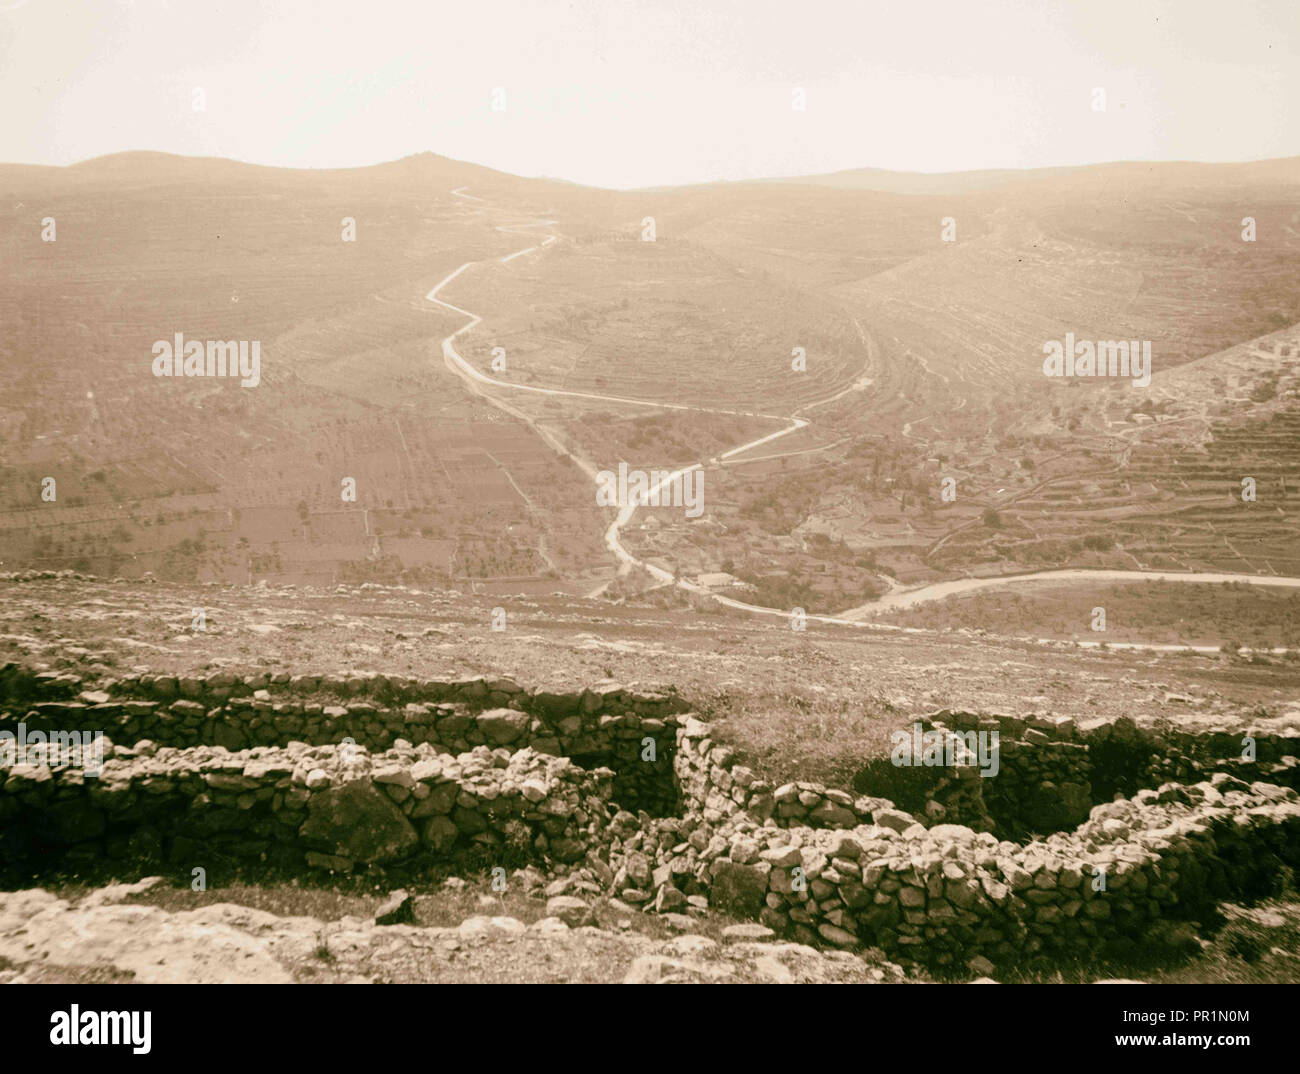 The surrender of Jerusalem to the British, December 9th, 1917. Deir Yasin trenches and approach to Jerusalem. 1917, Israel - Stock Image